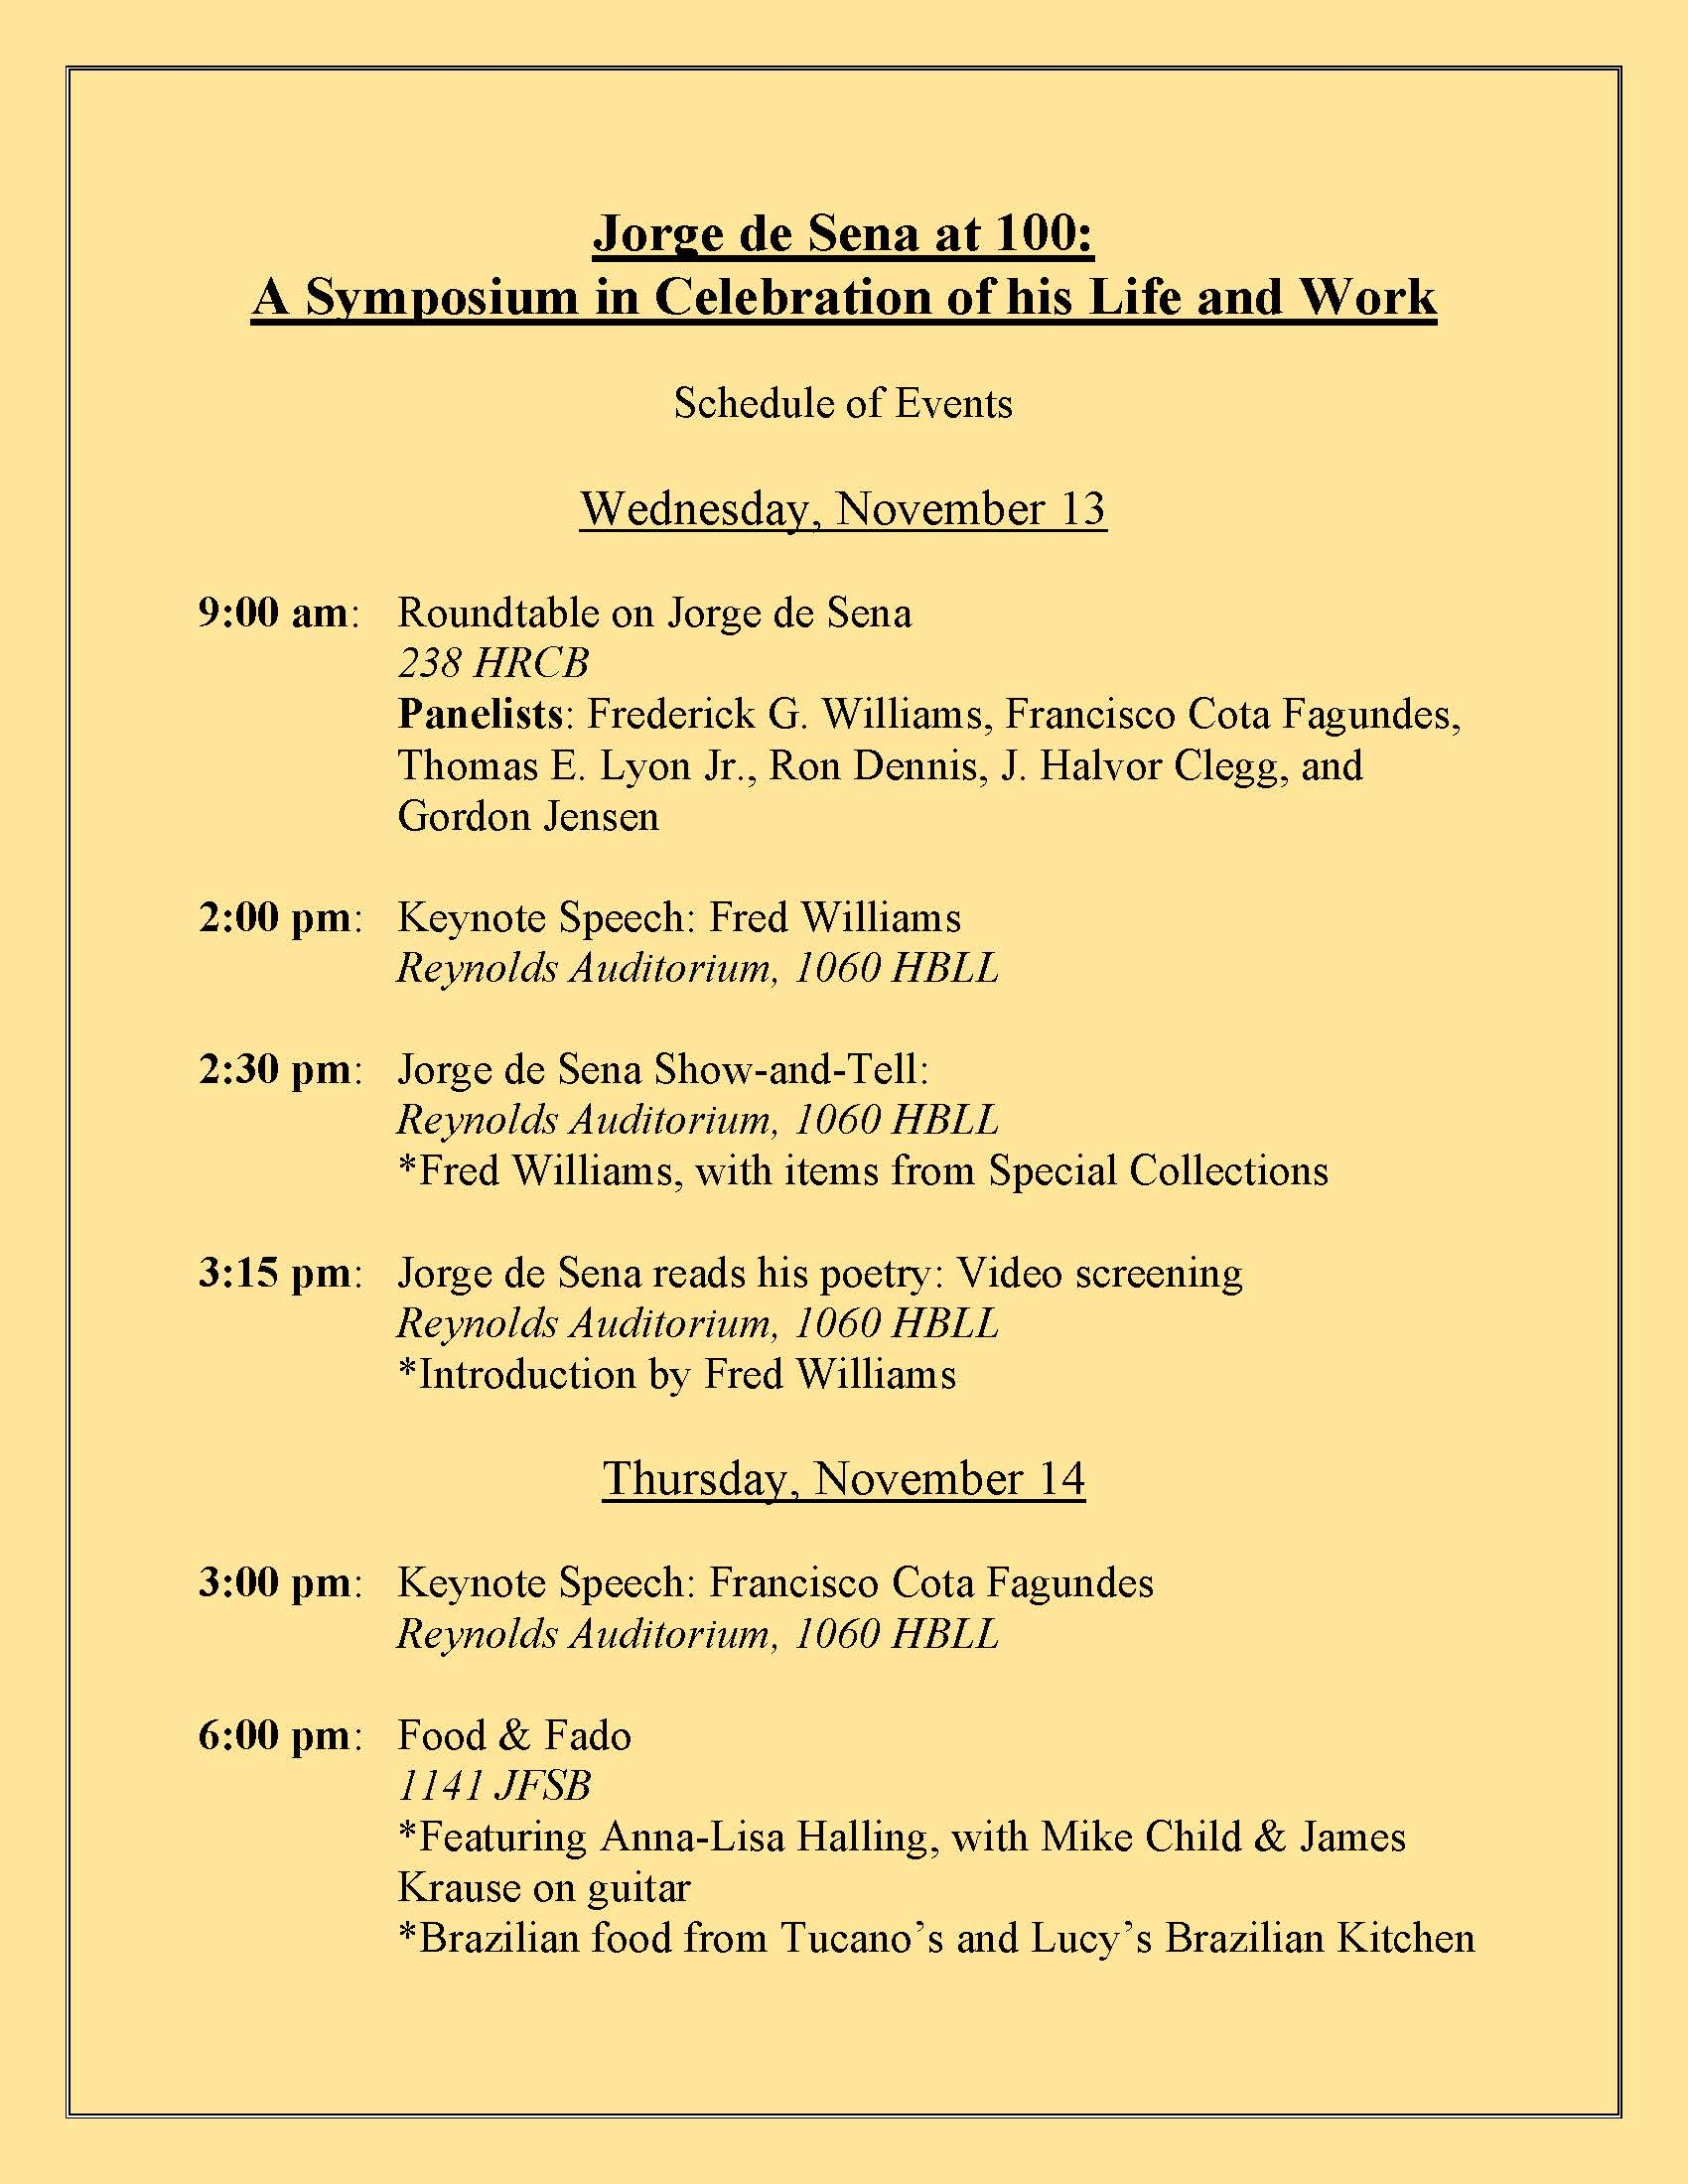 Jorge de Sena Symposium Schedule of Events